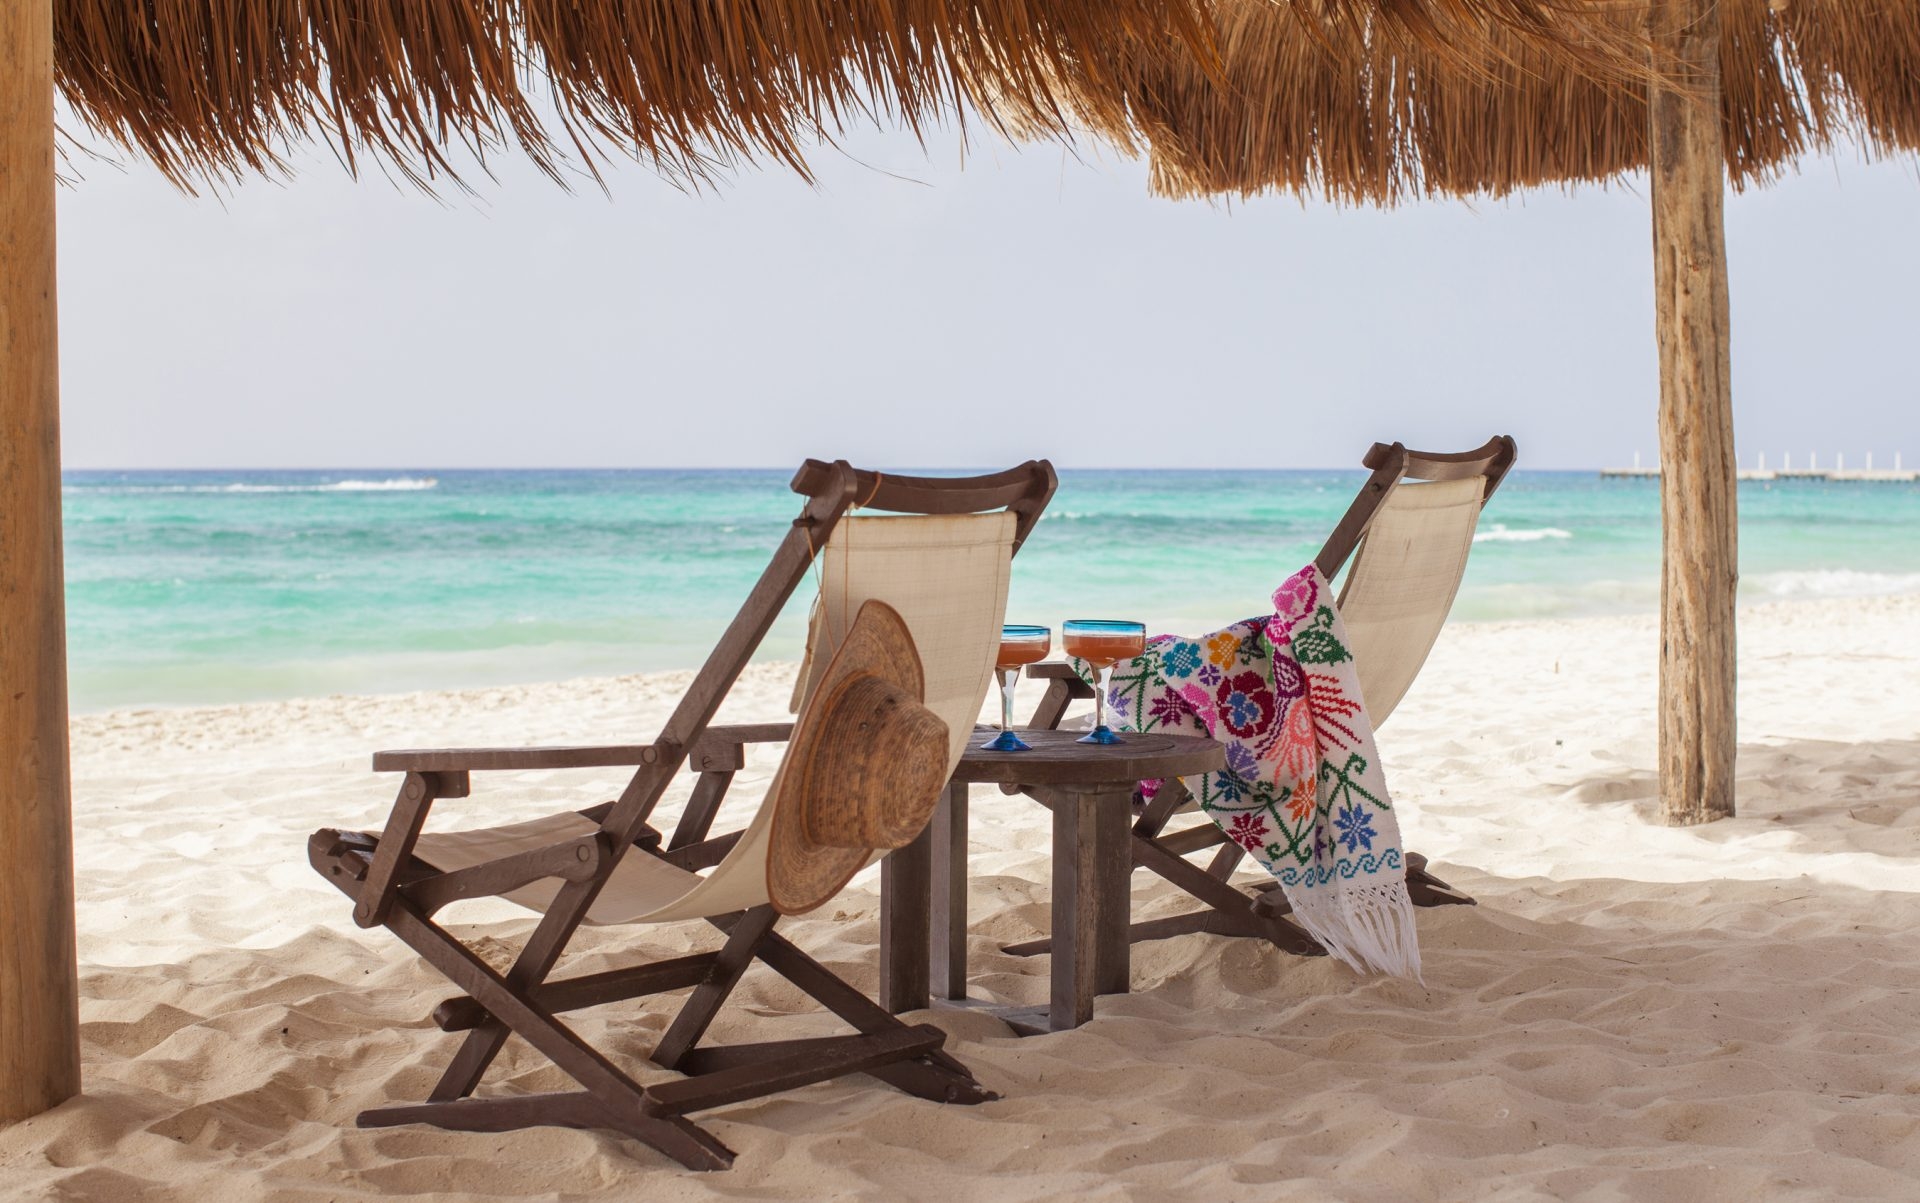 playa-del-carmen-beach-deck-chairs